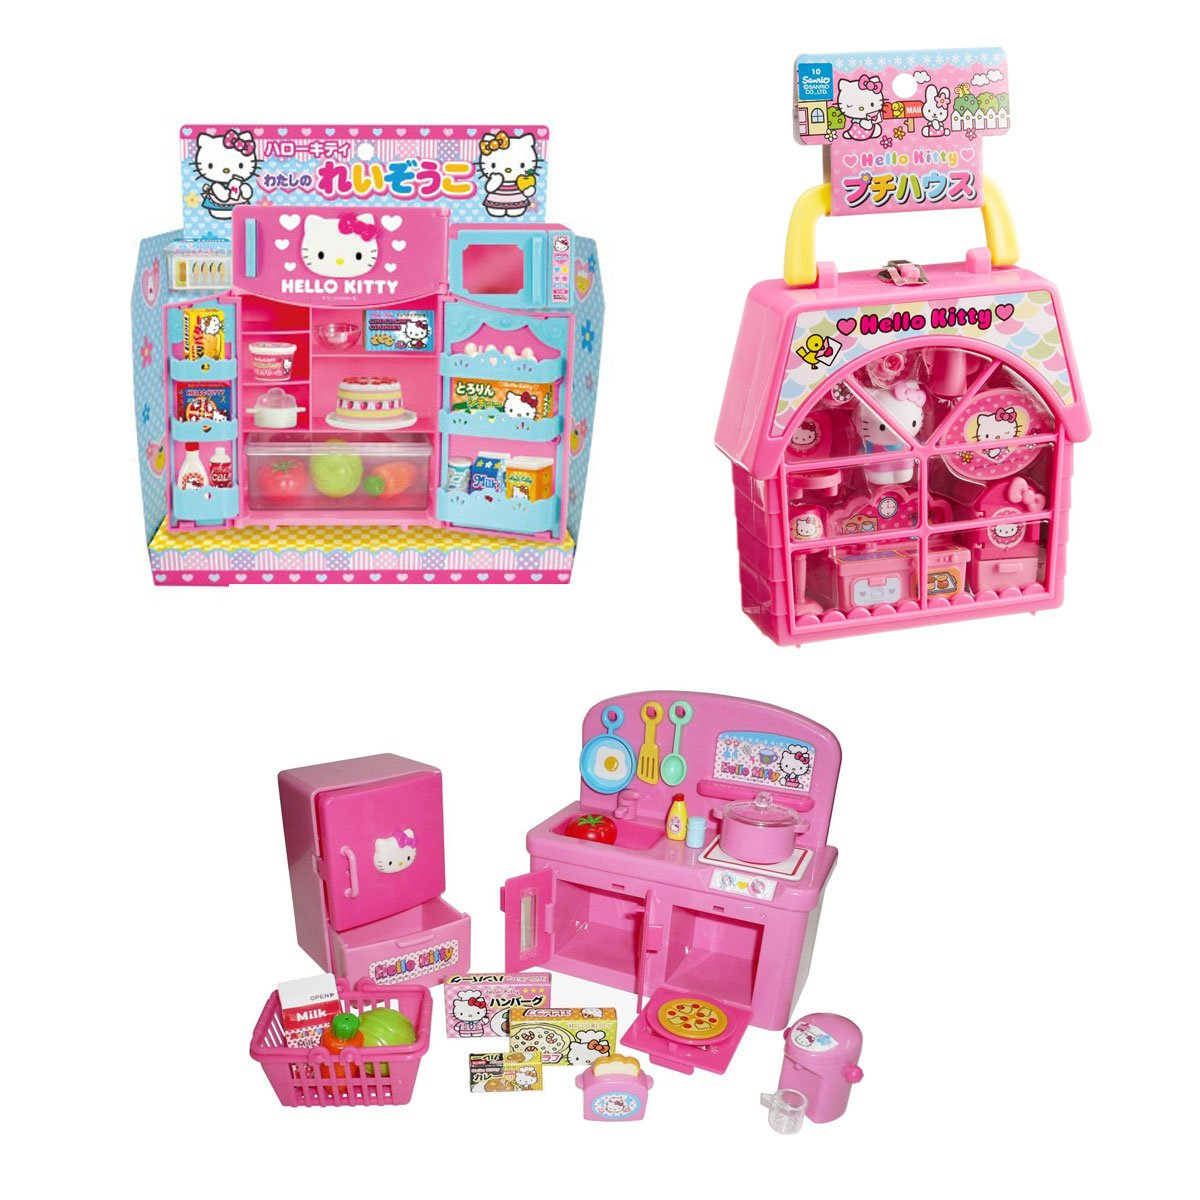 Hello Kitty 3 Unique Sets – Refrigerator, Kitchen and Petty House Play Sets (Japan Import)